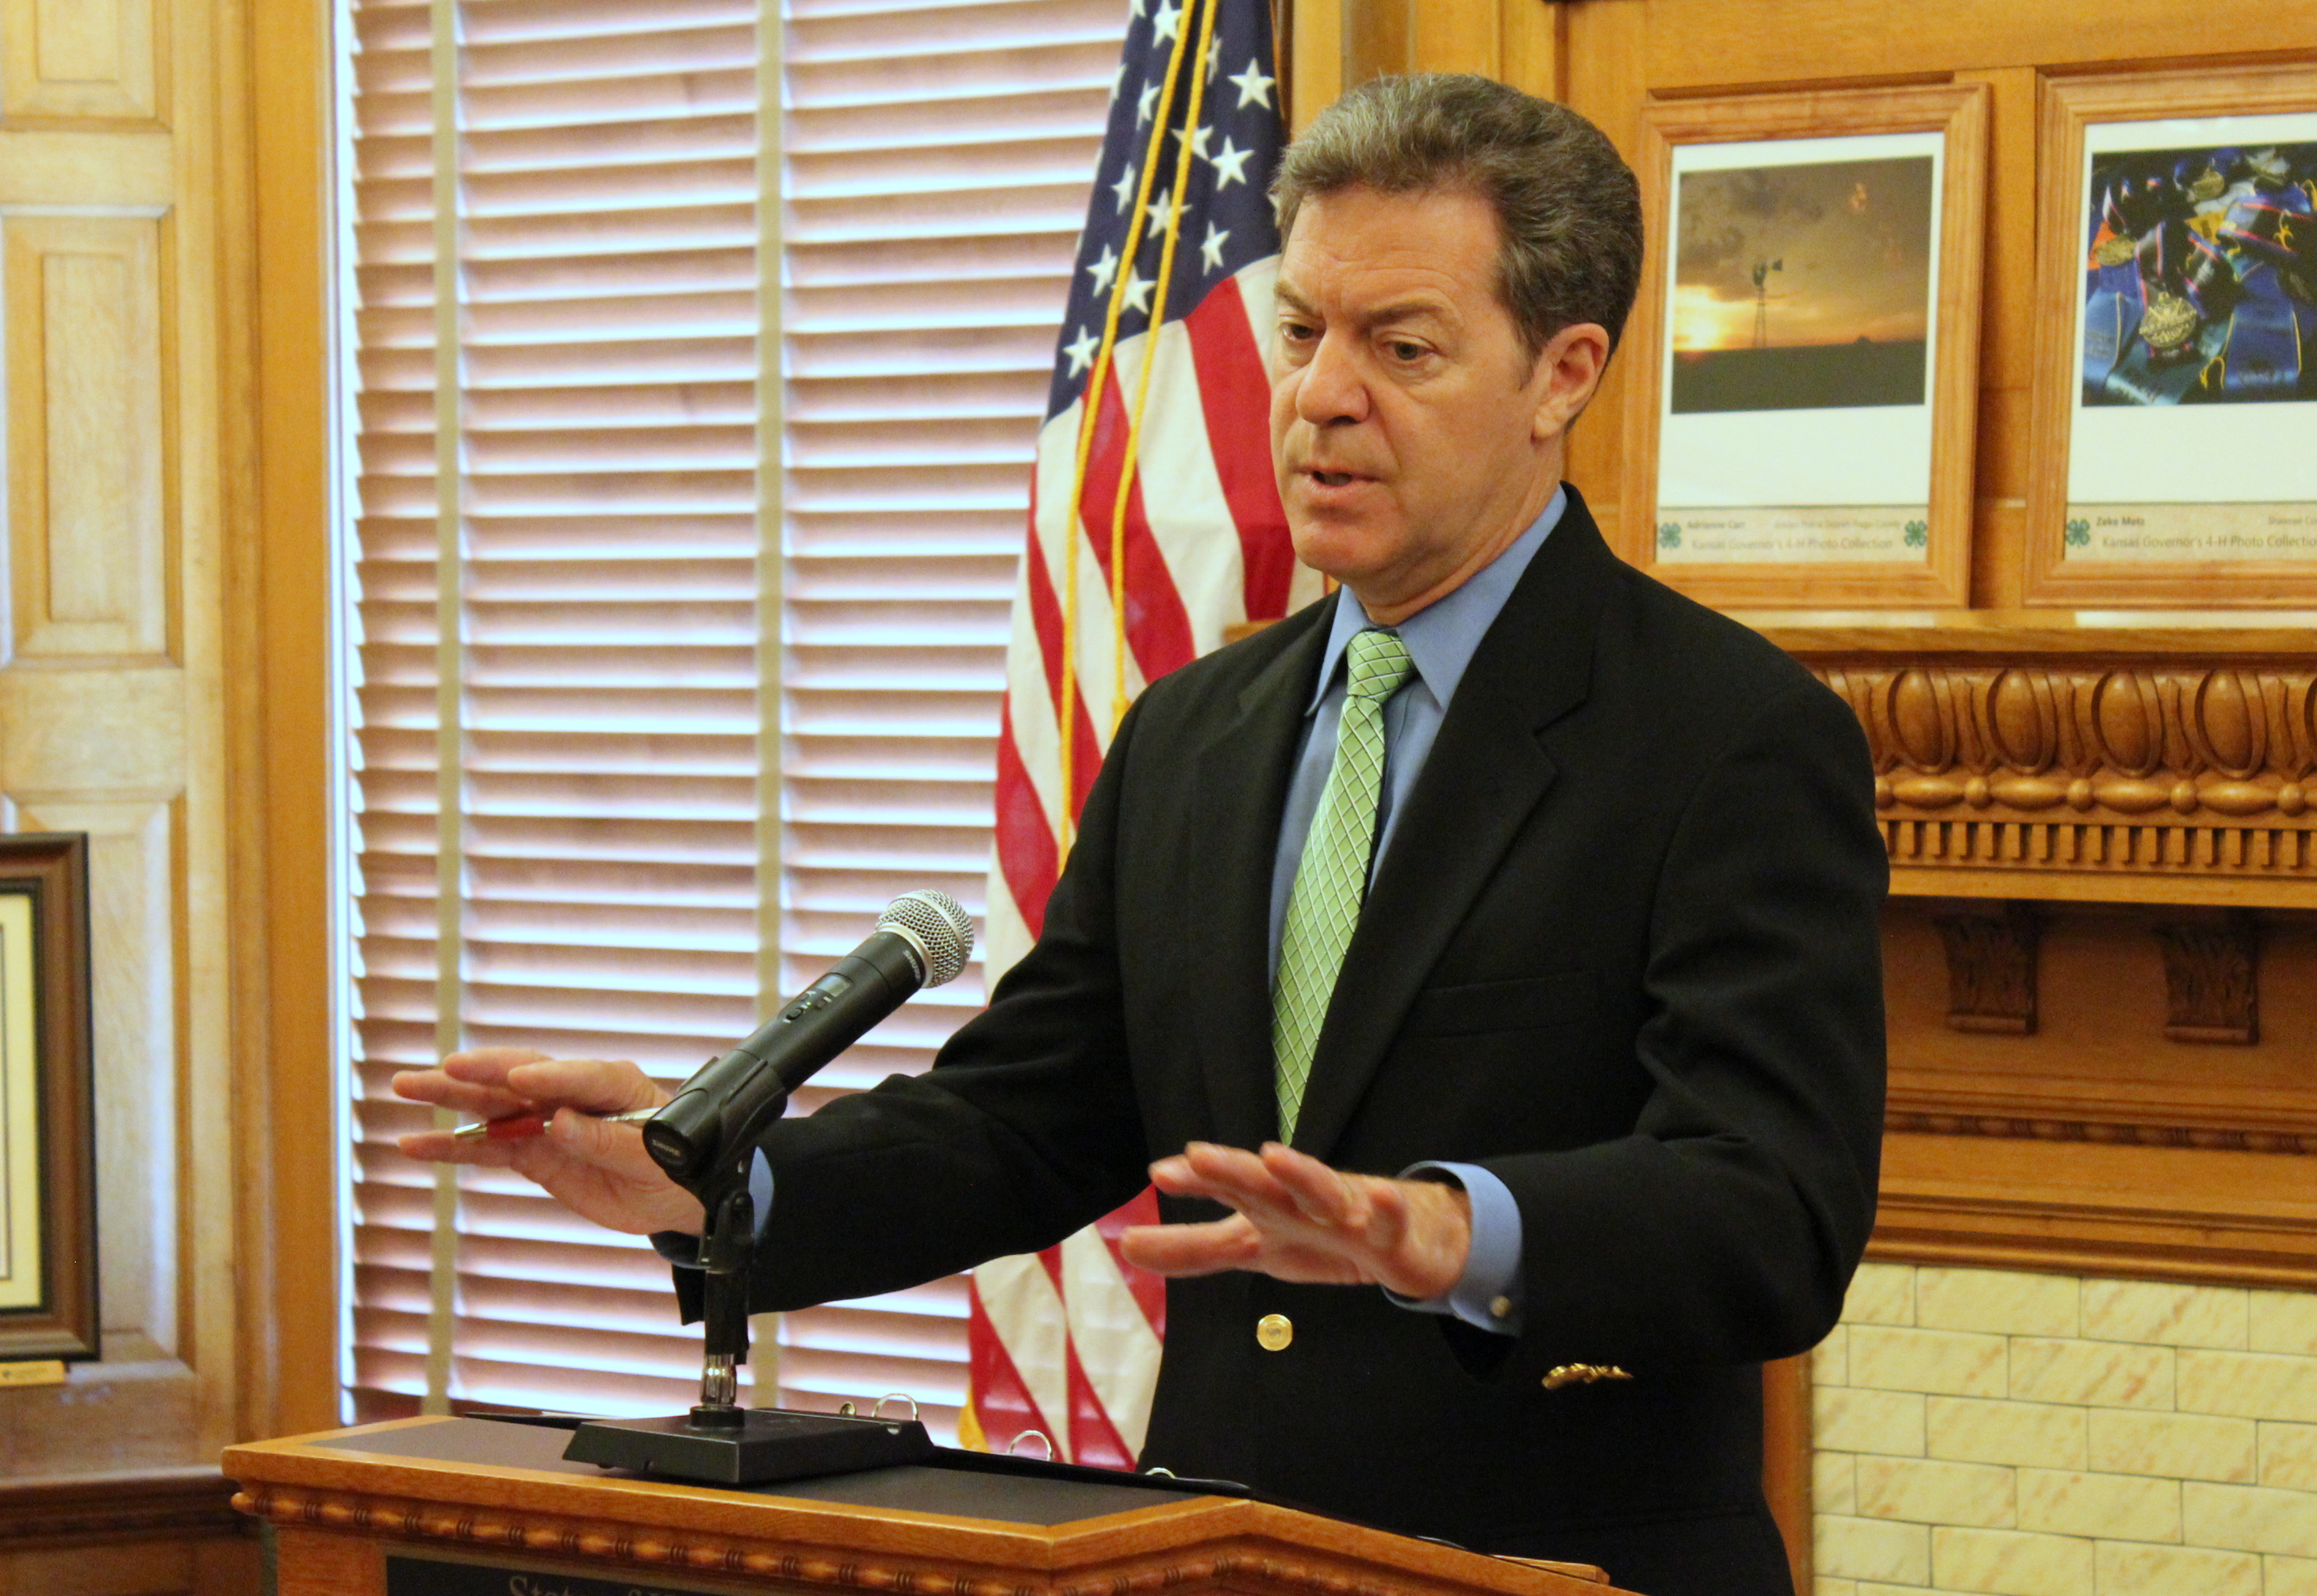 Governor Brownback speaking Friday. (Photo by Stephen Koranda)